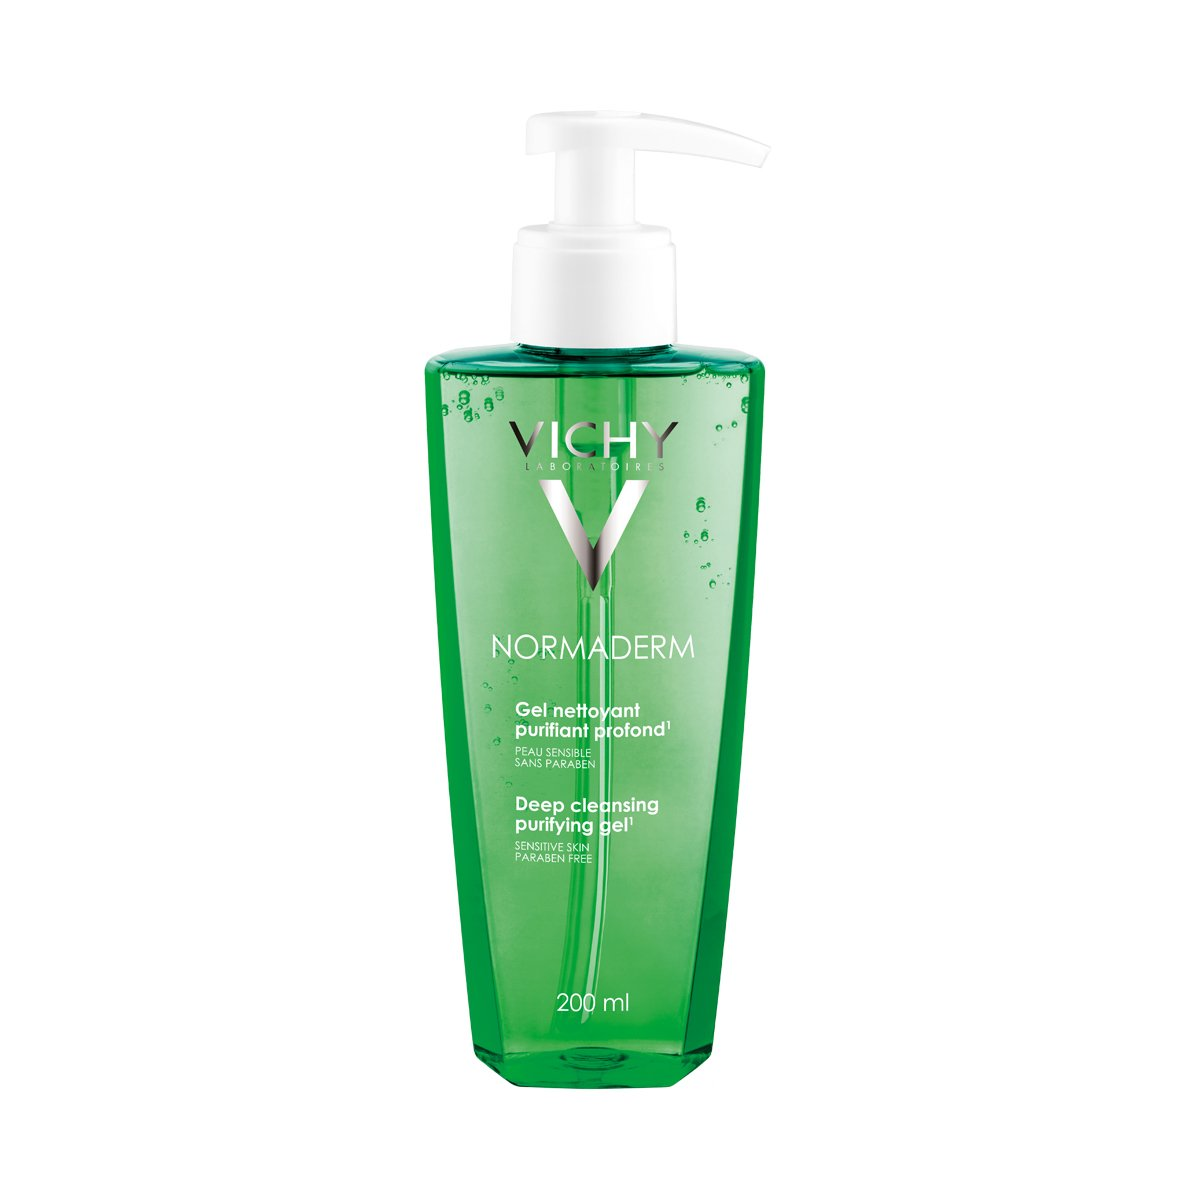 Vichy Normaderm Purifying Cleansing Gel Deep 3337871320744 VCH913232361_-200ML CAD